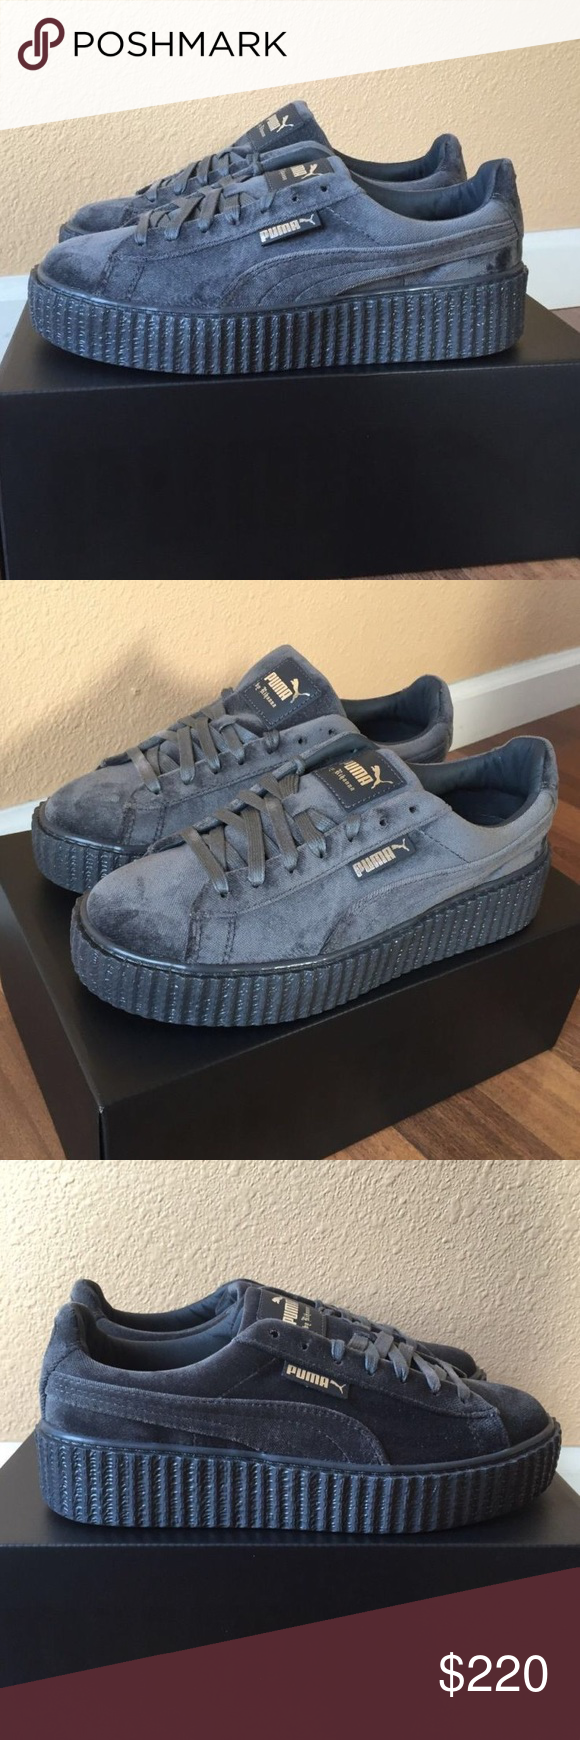 Fenty x Puma Suede Creeper Sneakers w/ Tags footaction sale online free shipping 100% authentic the cheapest newest cheap price clearance affordable szxFunP